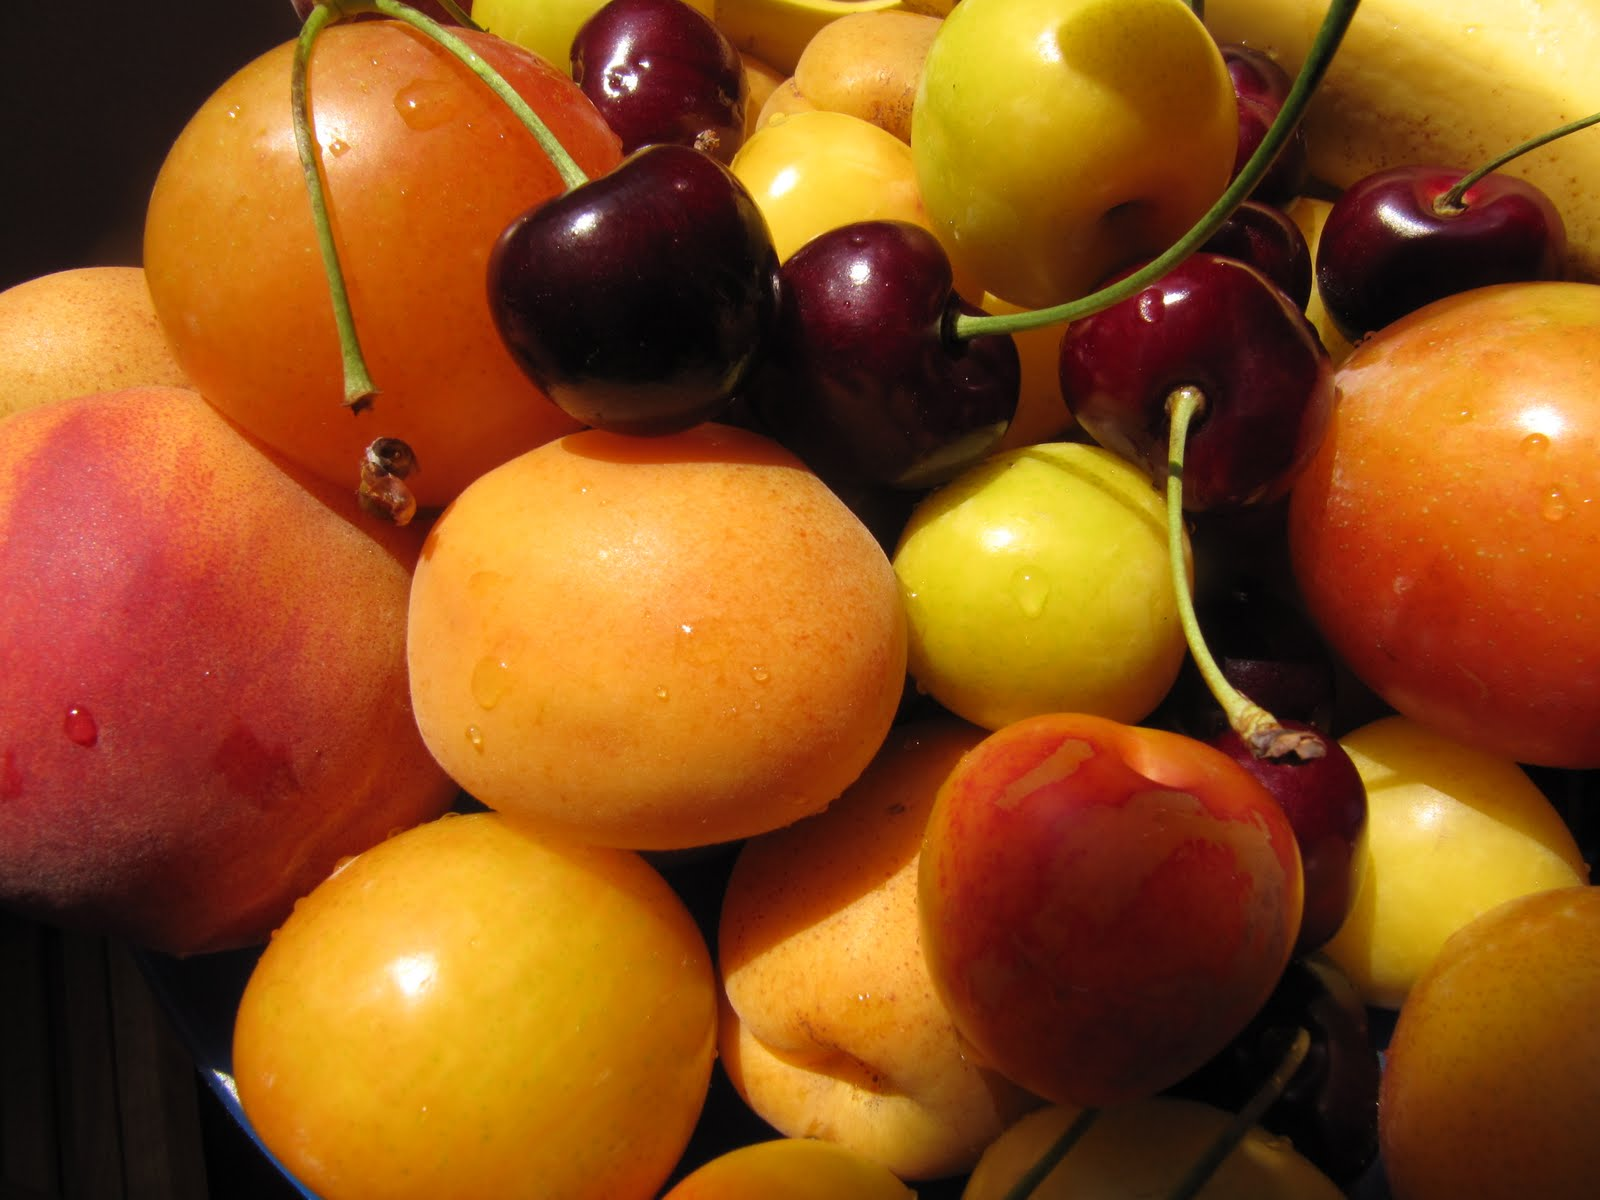 stone fruits are fruits fattening